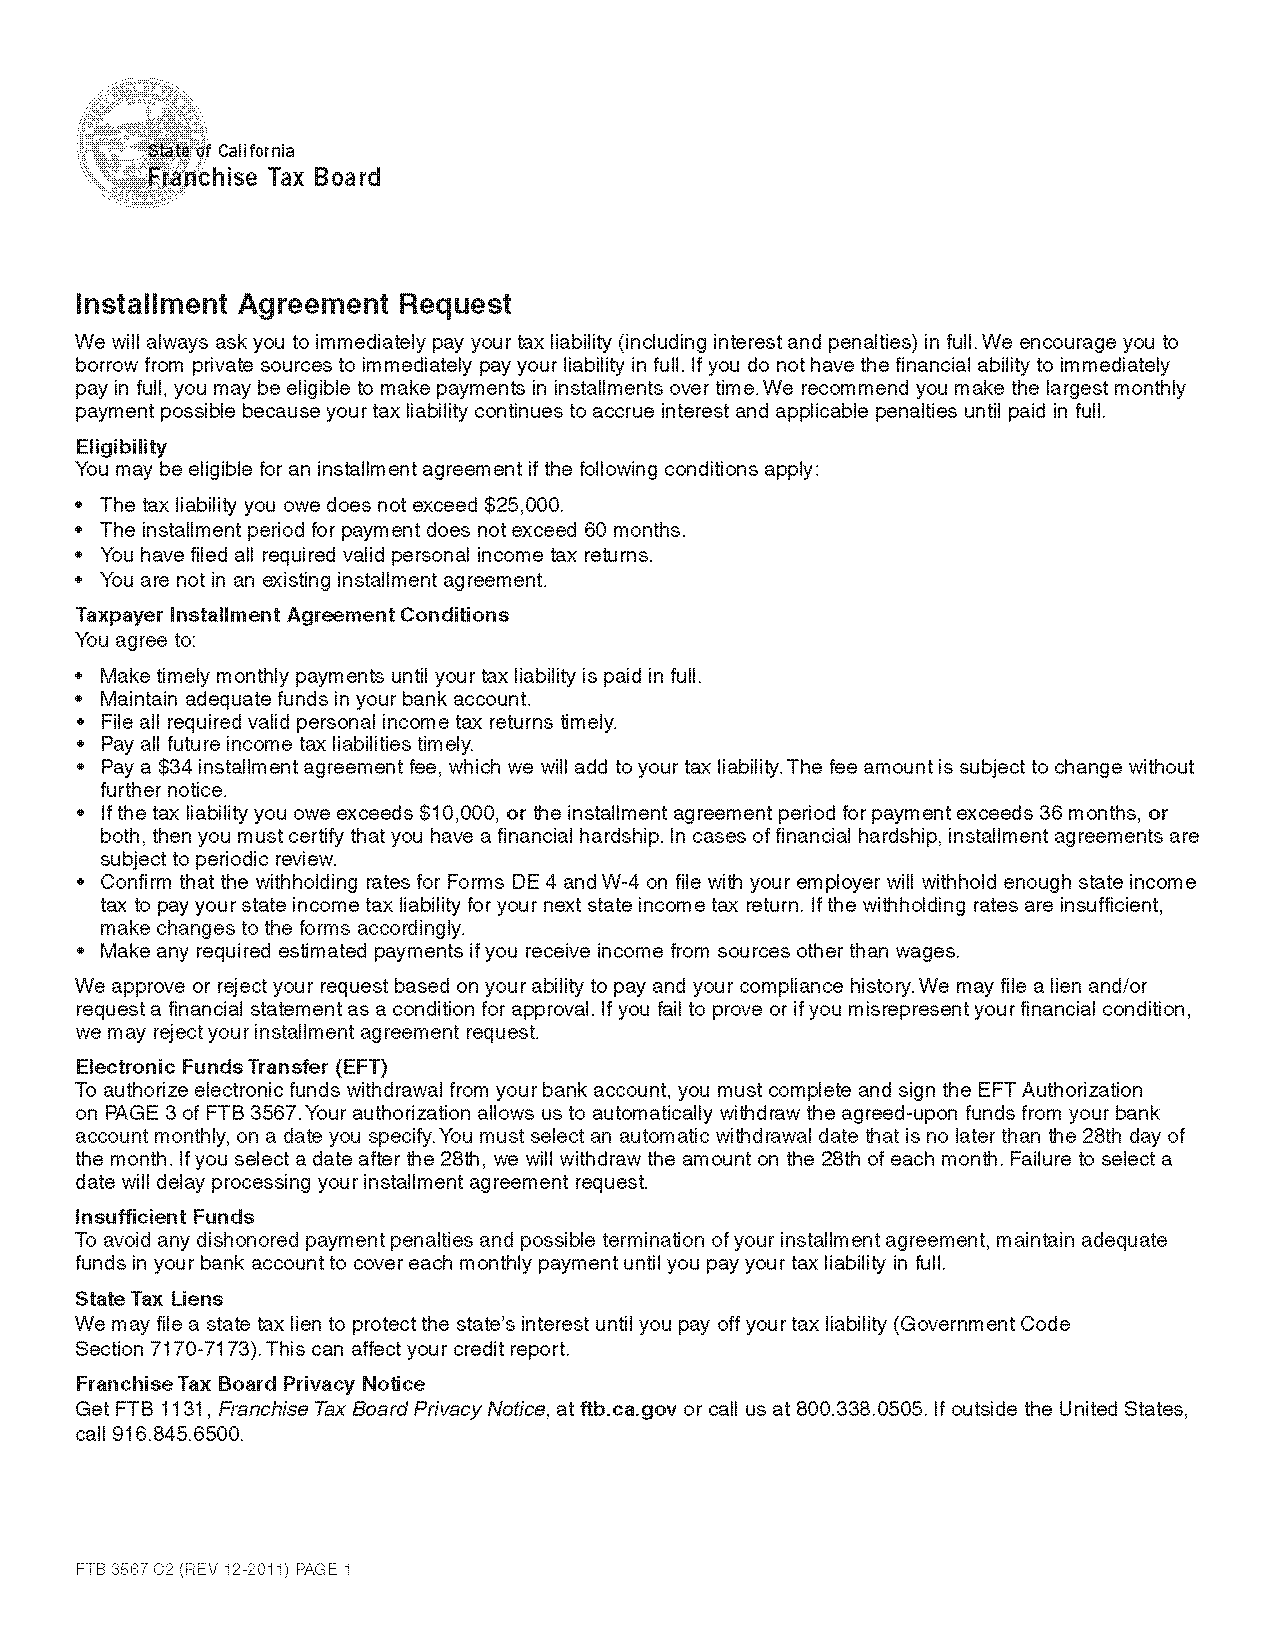 Form 3567 Installment Agreement Request